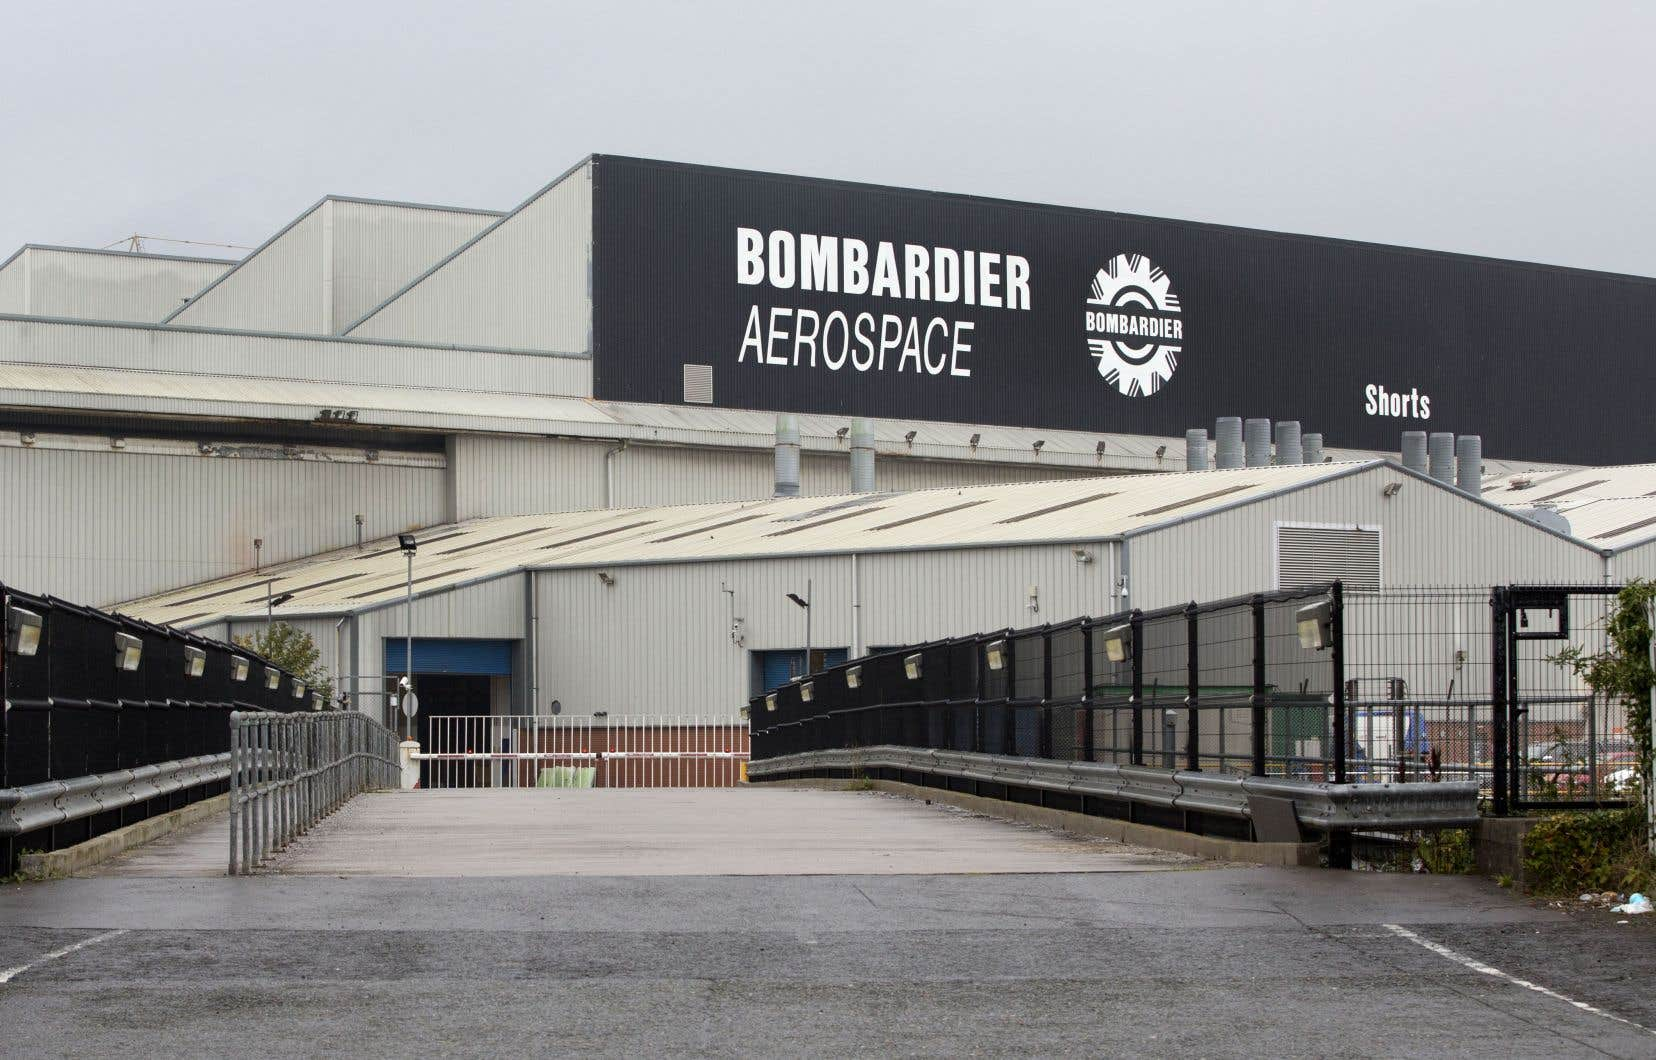 L'usine Bombardier de Belfast (sur la photo) et celle de Casablanca seront vendues.